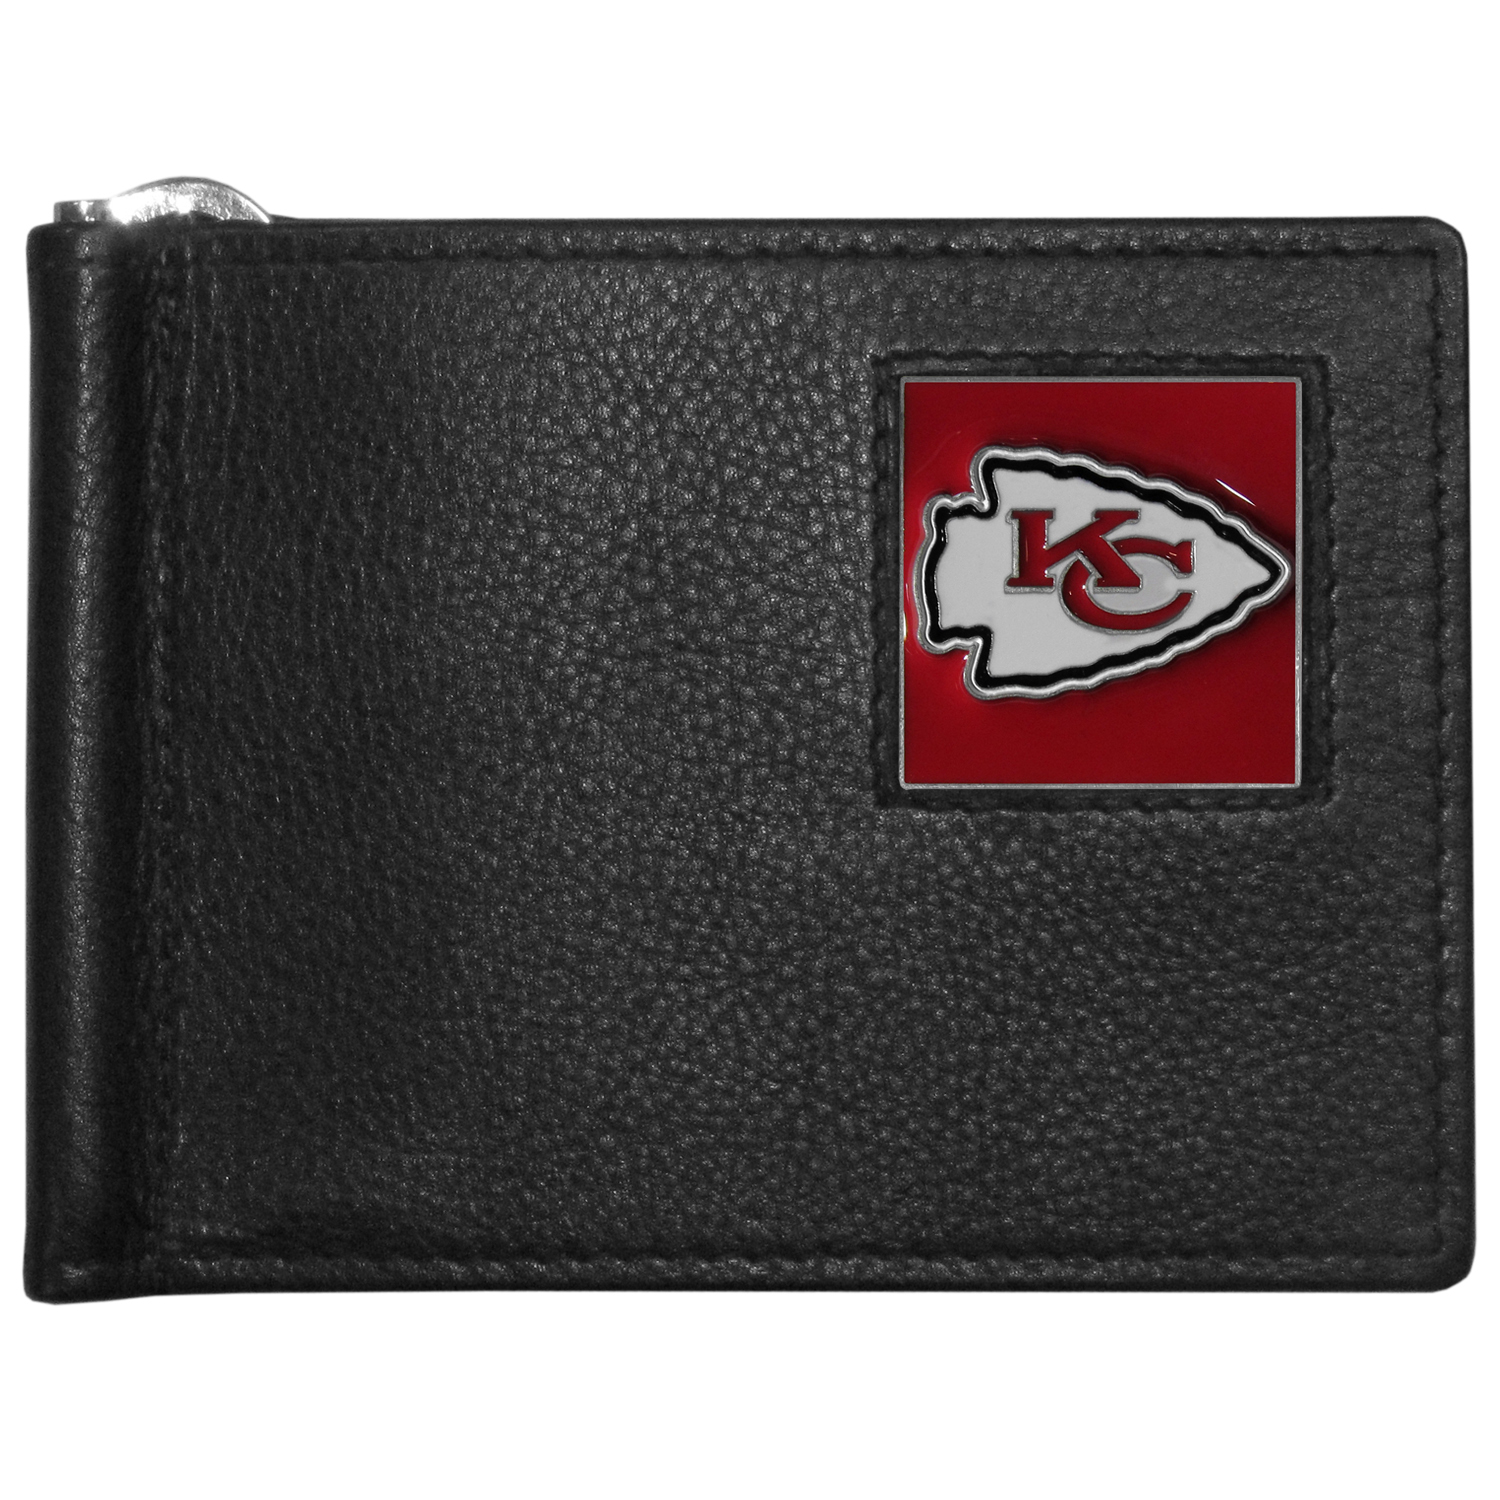 Kansas City Chiefs Leather Bill Clip Wallet - This cool new style wallet features an inner, metal bill clip that lips up for easy access. The super slim wallet holds tons of stuff with ample pockets, credit card slots & windowed ID slot.  The wallet is made of genuine fine grain leather and it finished with a metal Kansas City Chiefs emblem. The wallet is shipped in gift box packaging.